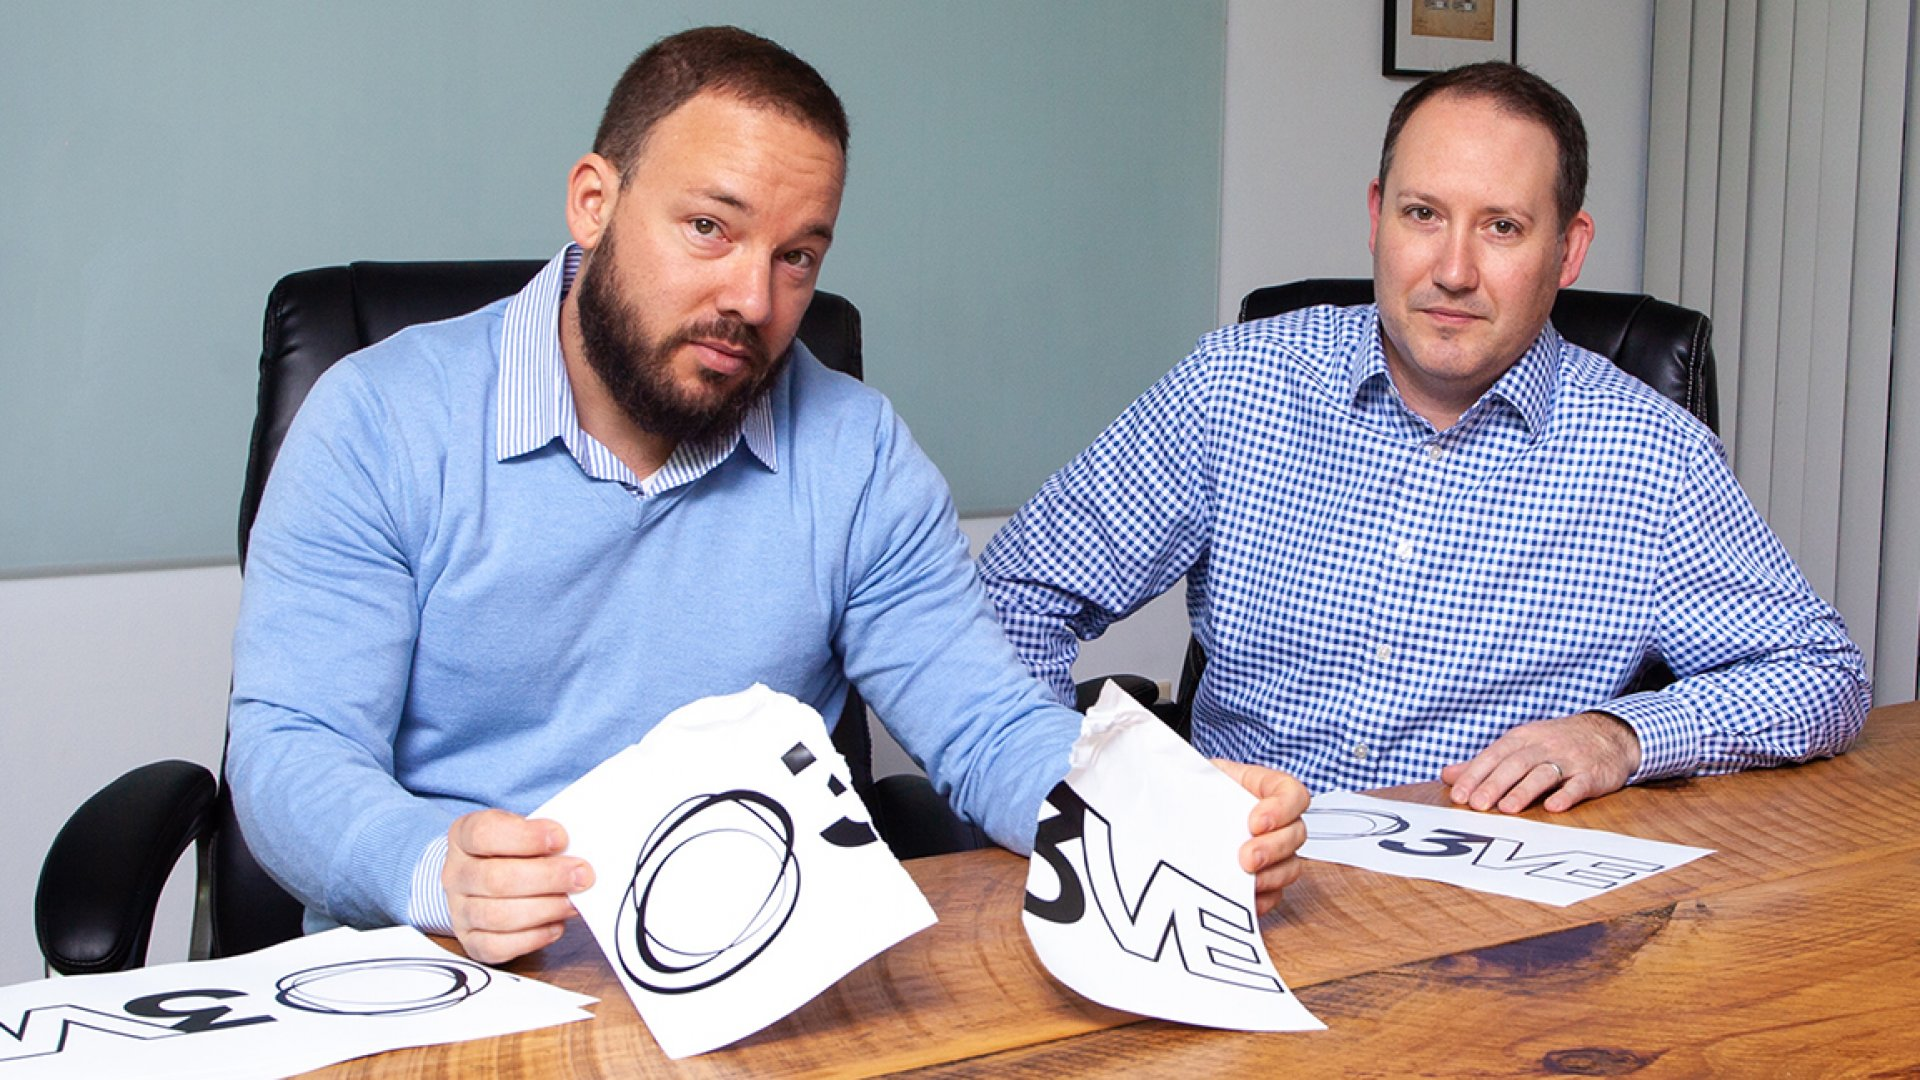 David Christopher, at left, and Neal Maier got an email from Google that shattered $150,000 worth of branding work their creative agency had done.